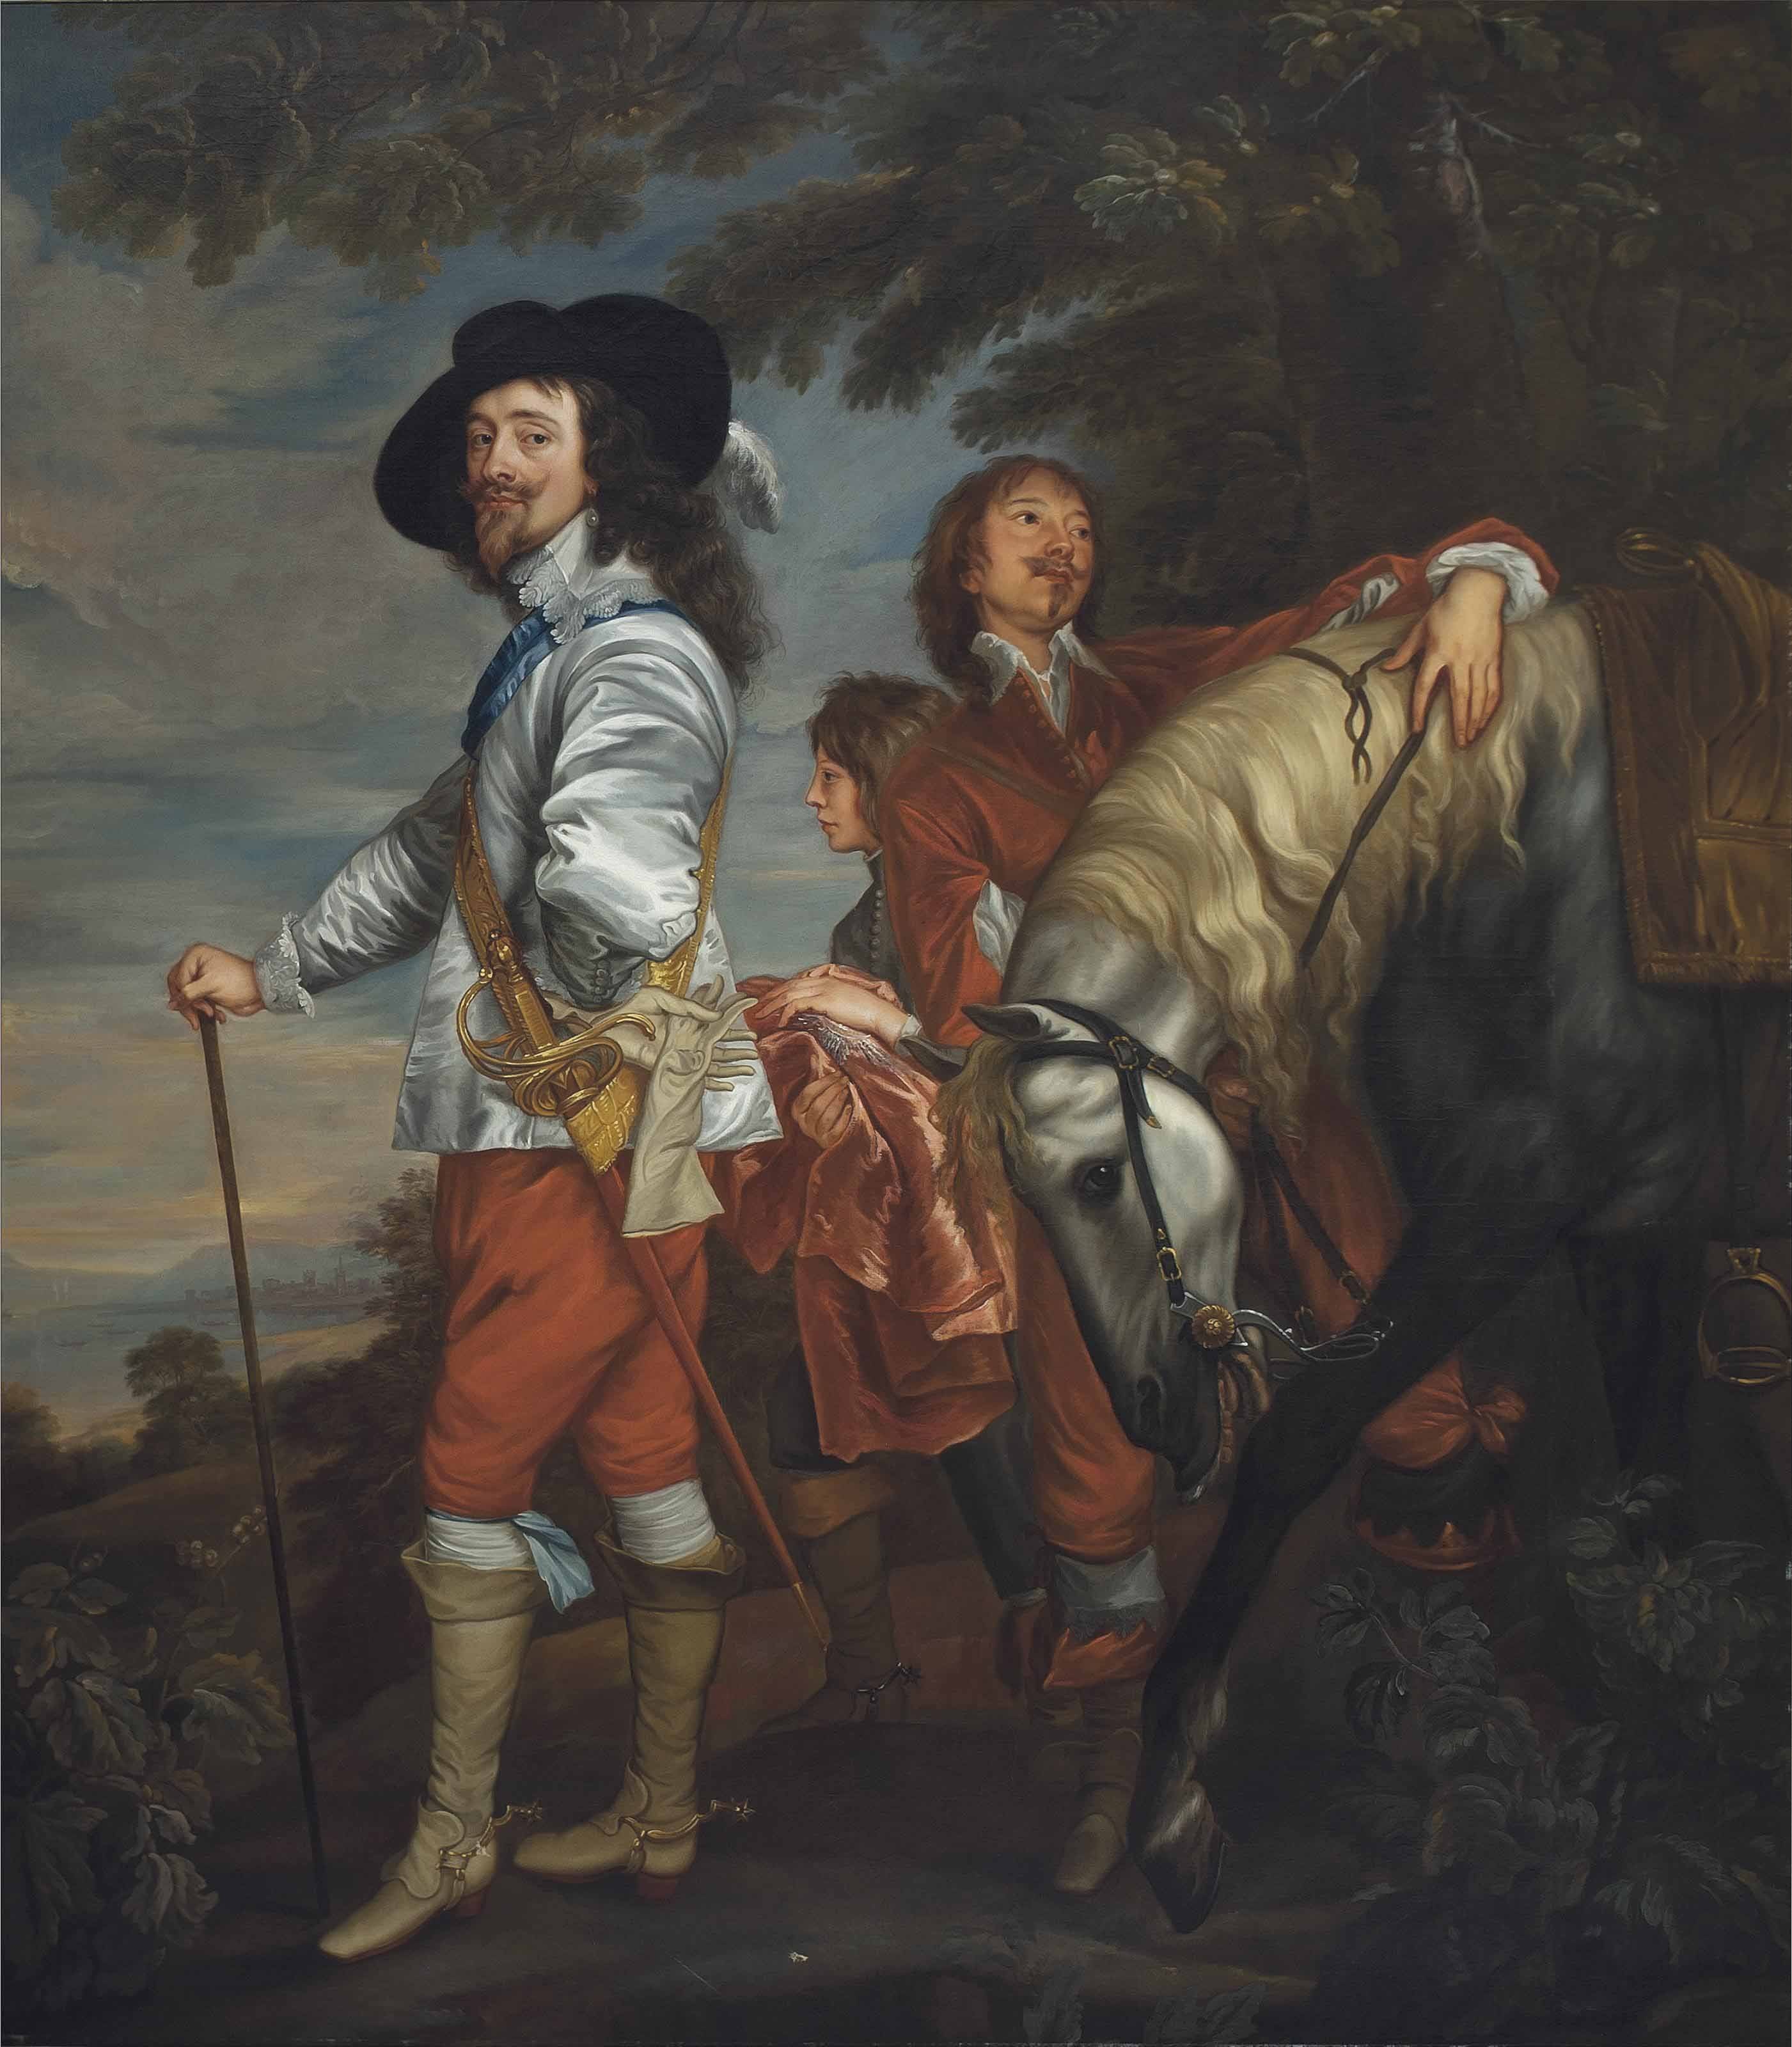 Attributed to Charles Jervas (Dublin c. 1675-1739 London) after Sir Anthony van Dyck